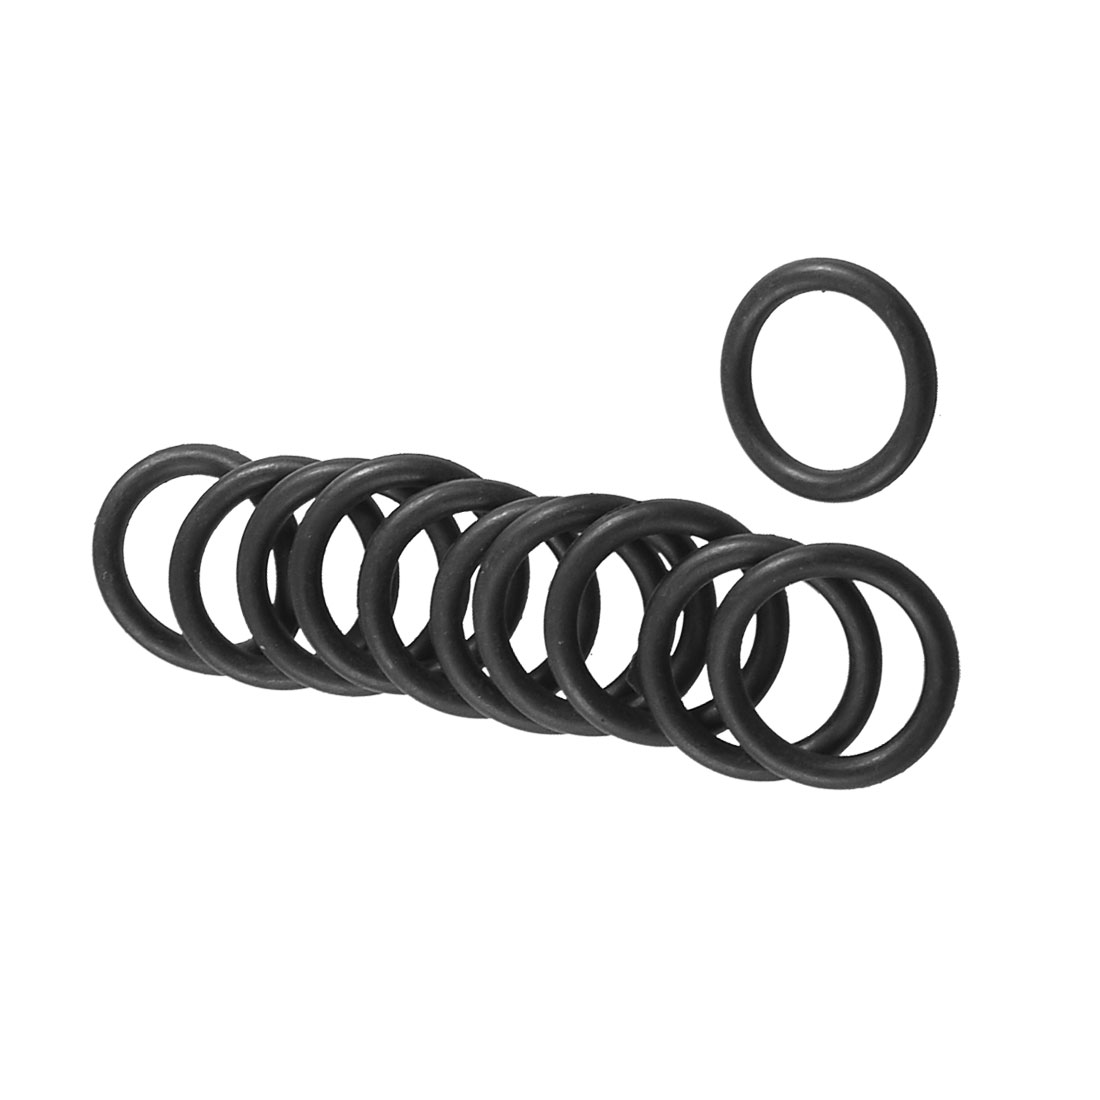 10 Pcs 16mm x 10mm x 3mm Mechanical Black Rubber O Ring Oil Seal Gaskets